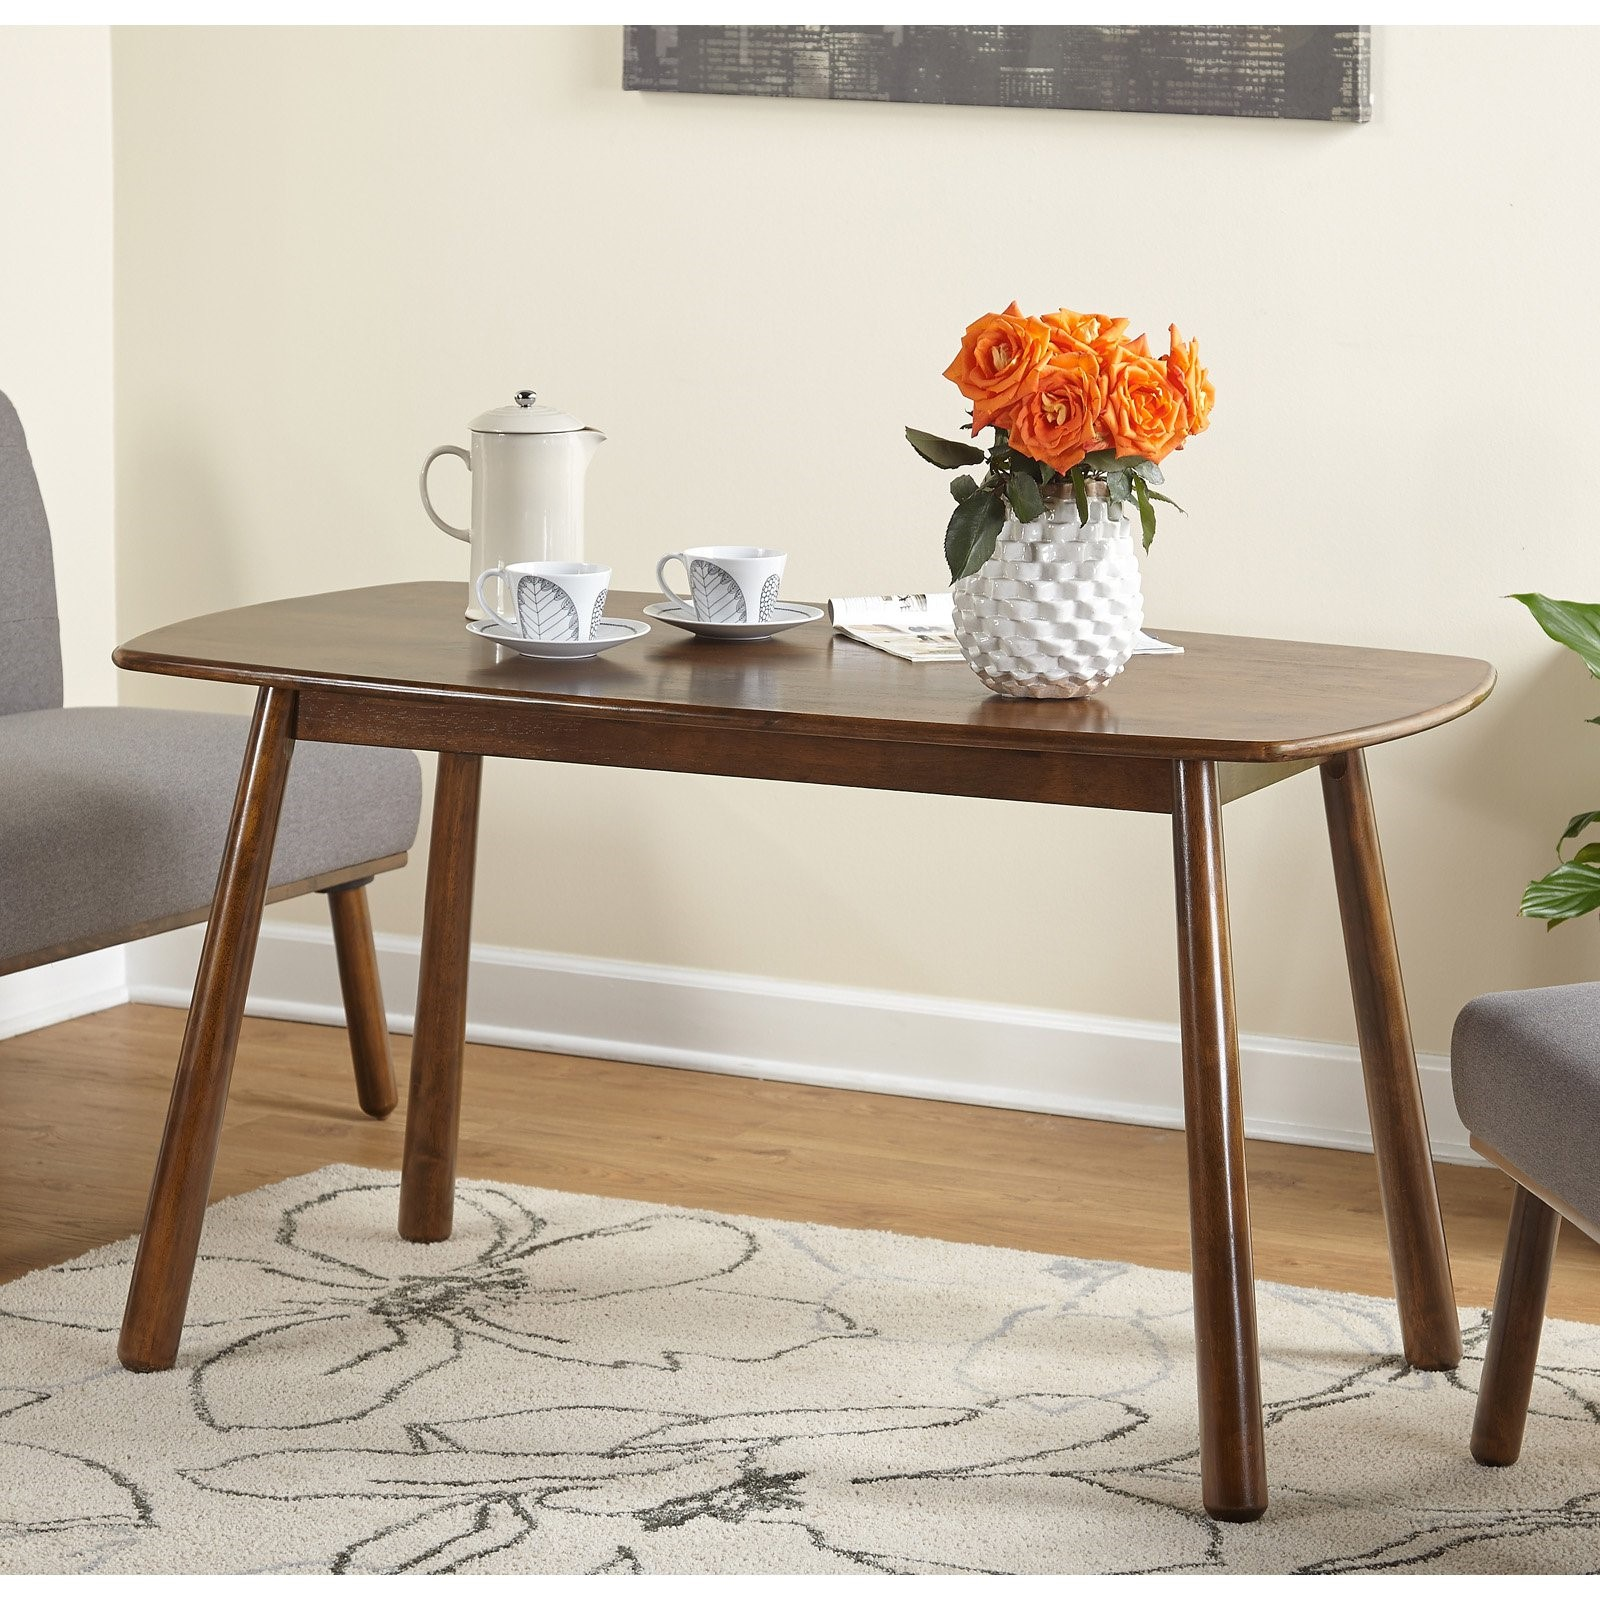 Target Marketing Systems Playmate Dining Table